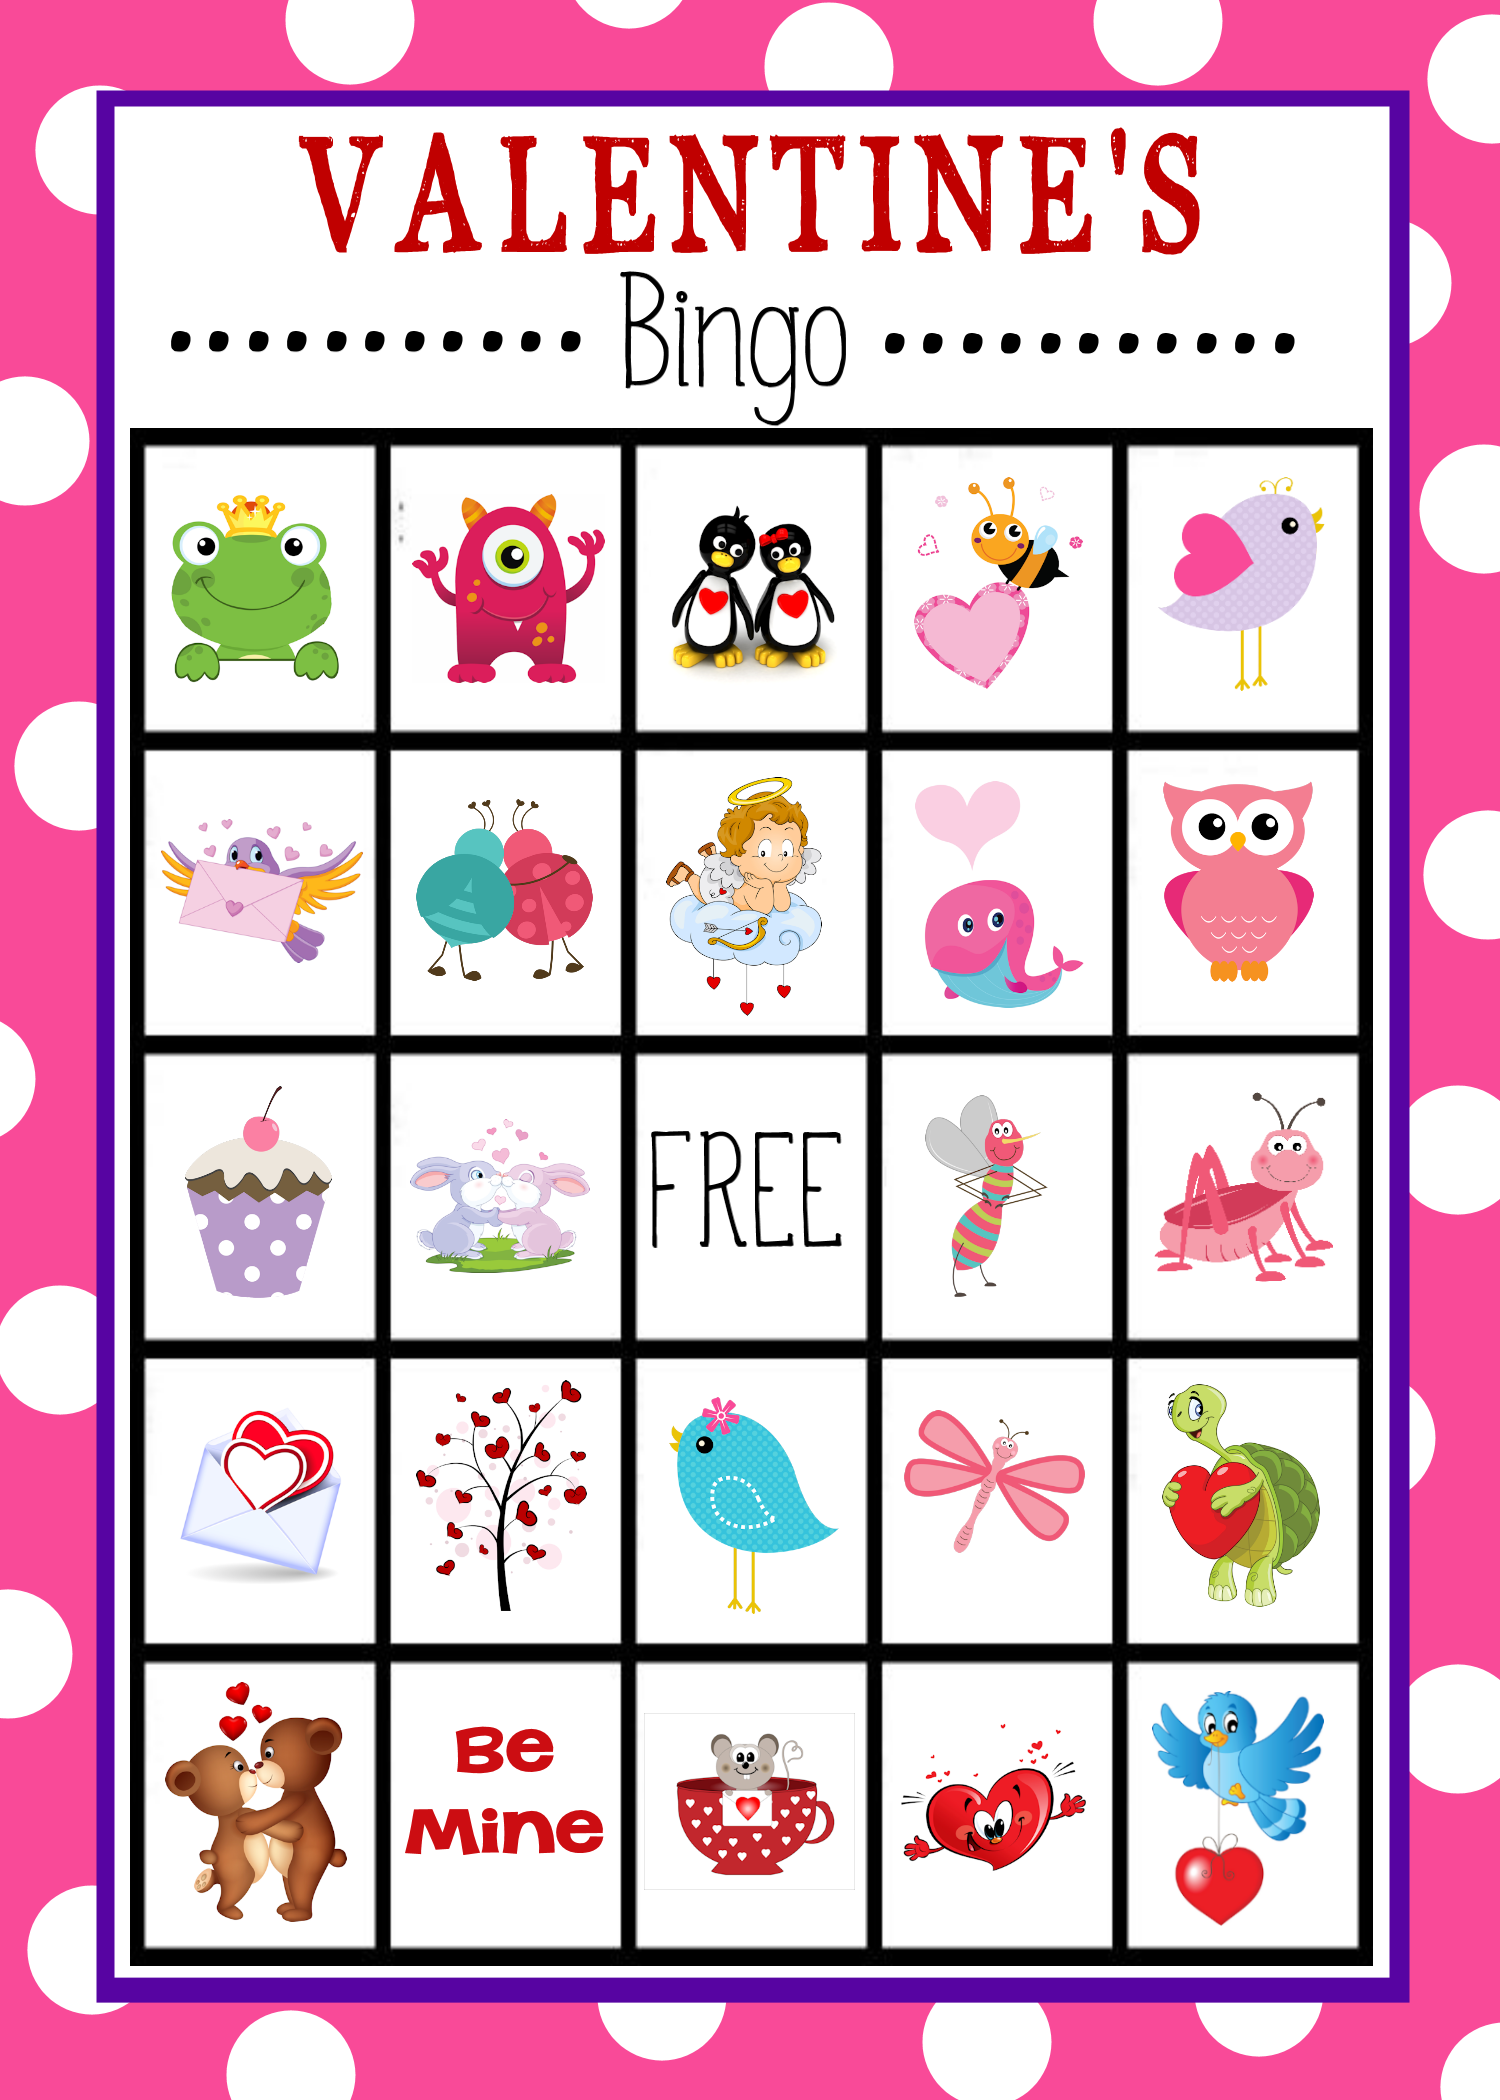 Impertinent image intended for printable valentines bingo cards